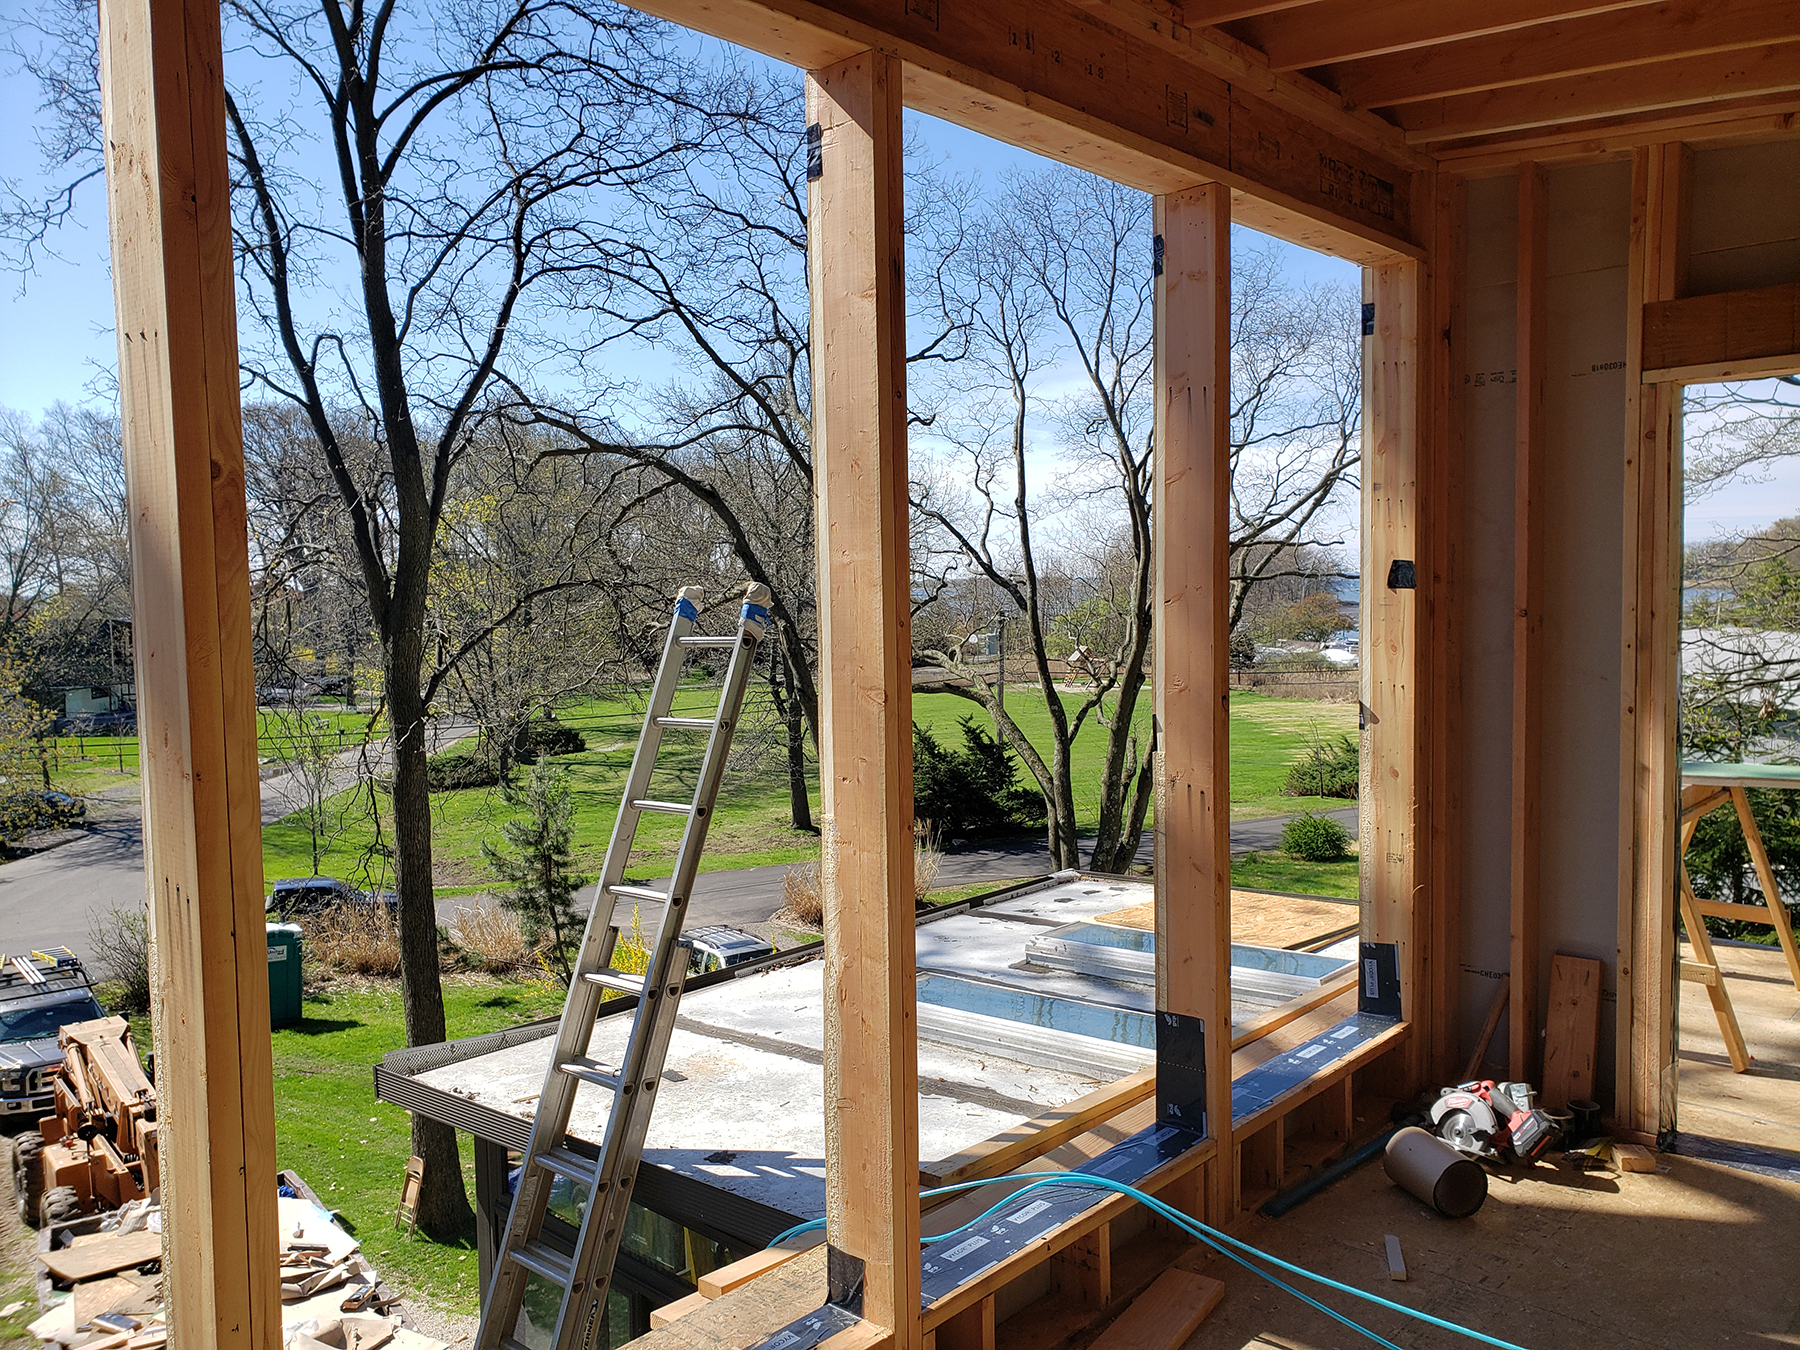 4.25.19 Village Creek Remodel interior window view.jpg